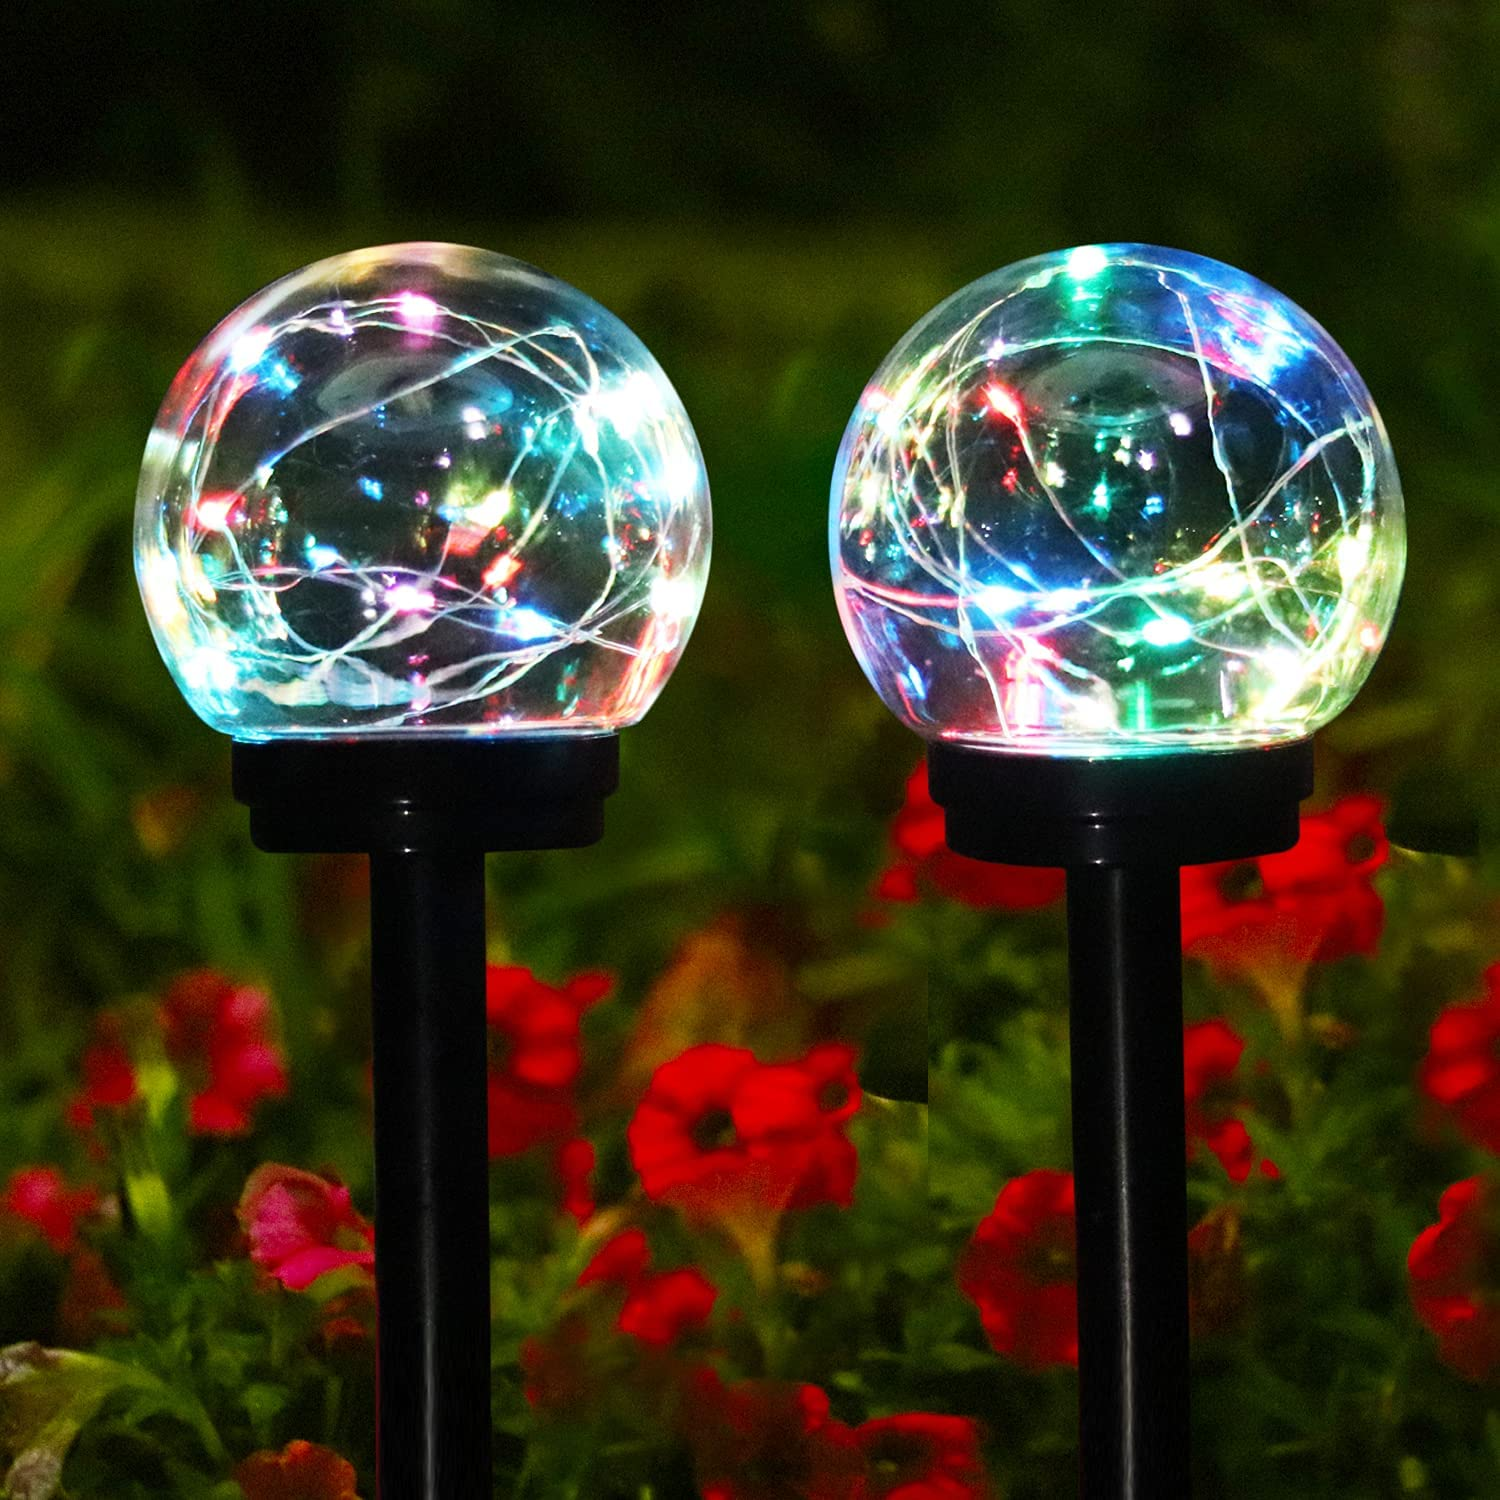 Garden Solar Lights Pathway Outdoor Solar LED Colour Changing Globe Garden Stake Lights Decor Yard Art Waterproof Lights for Yard Patio Walkway Landscape Lawn Decorations(2 Pack)